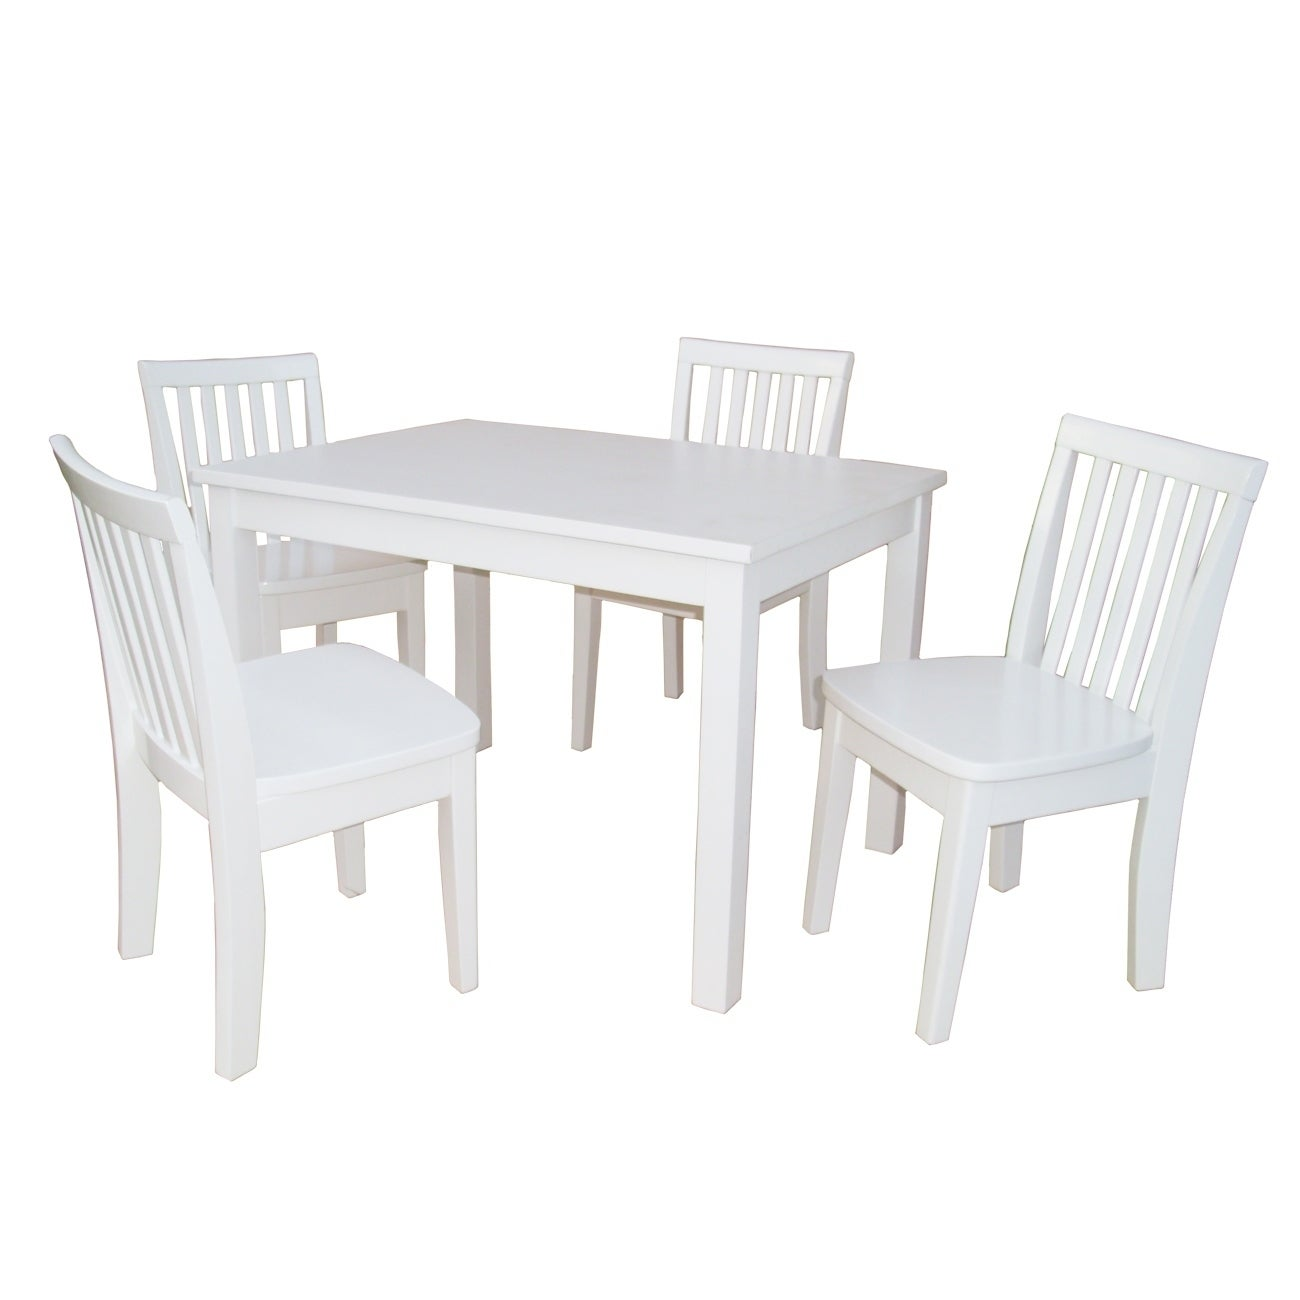 Juvenile Linen White Table with Four Chairs Set (/)